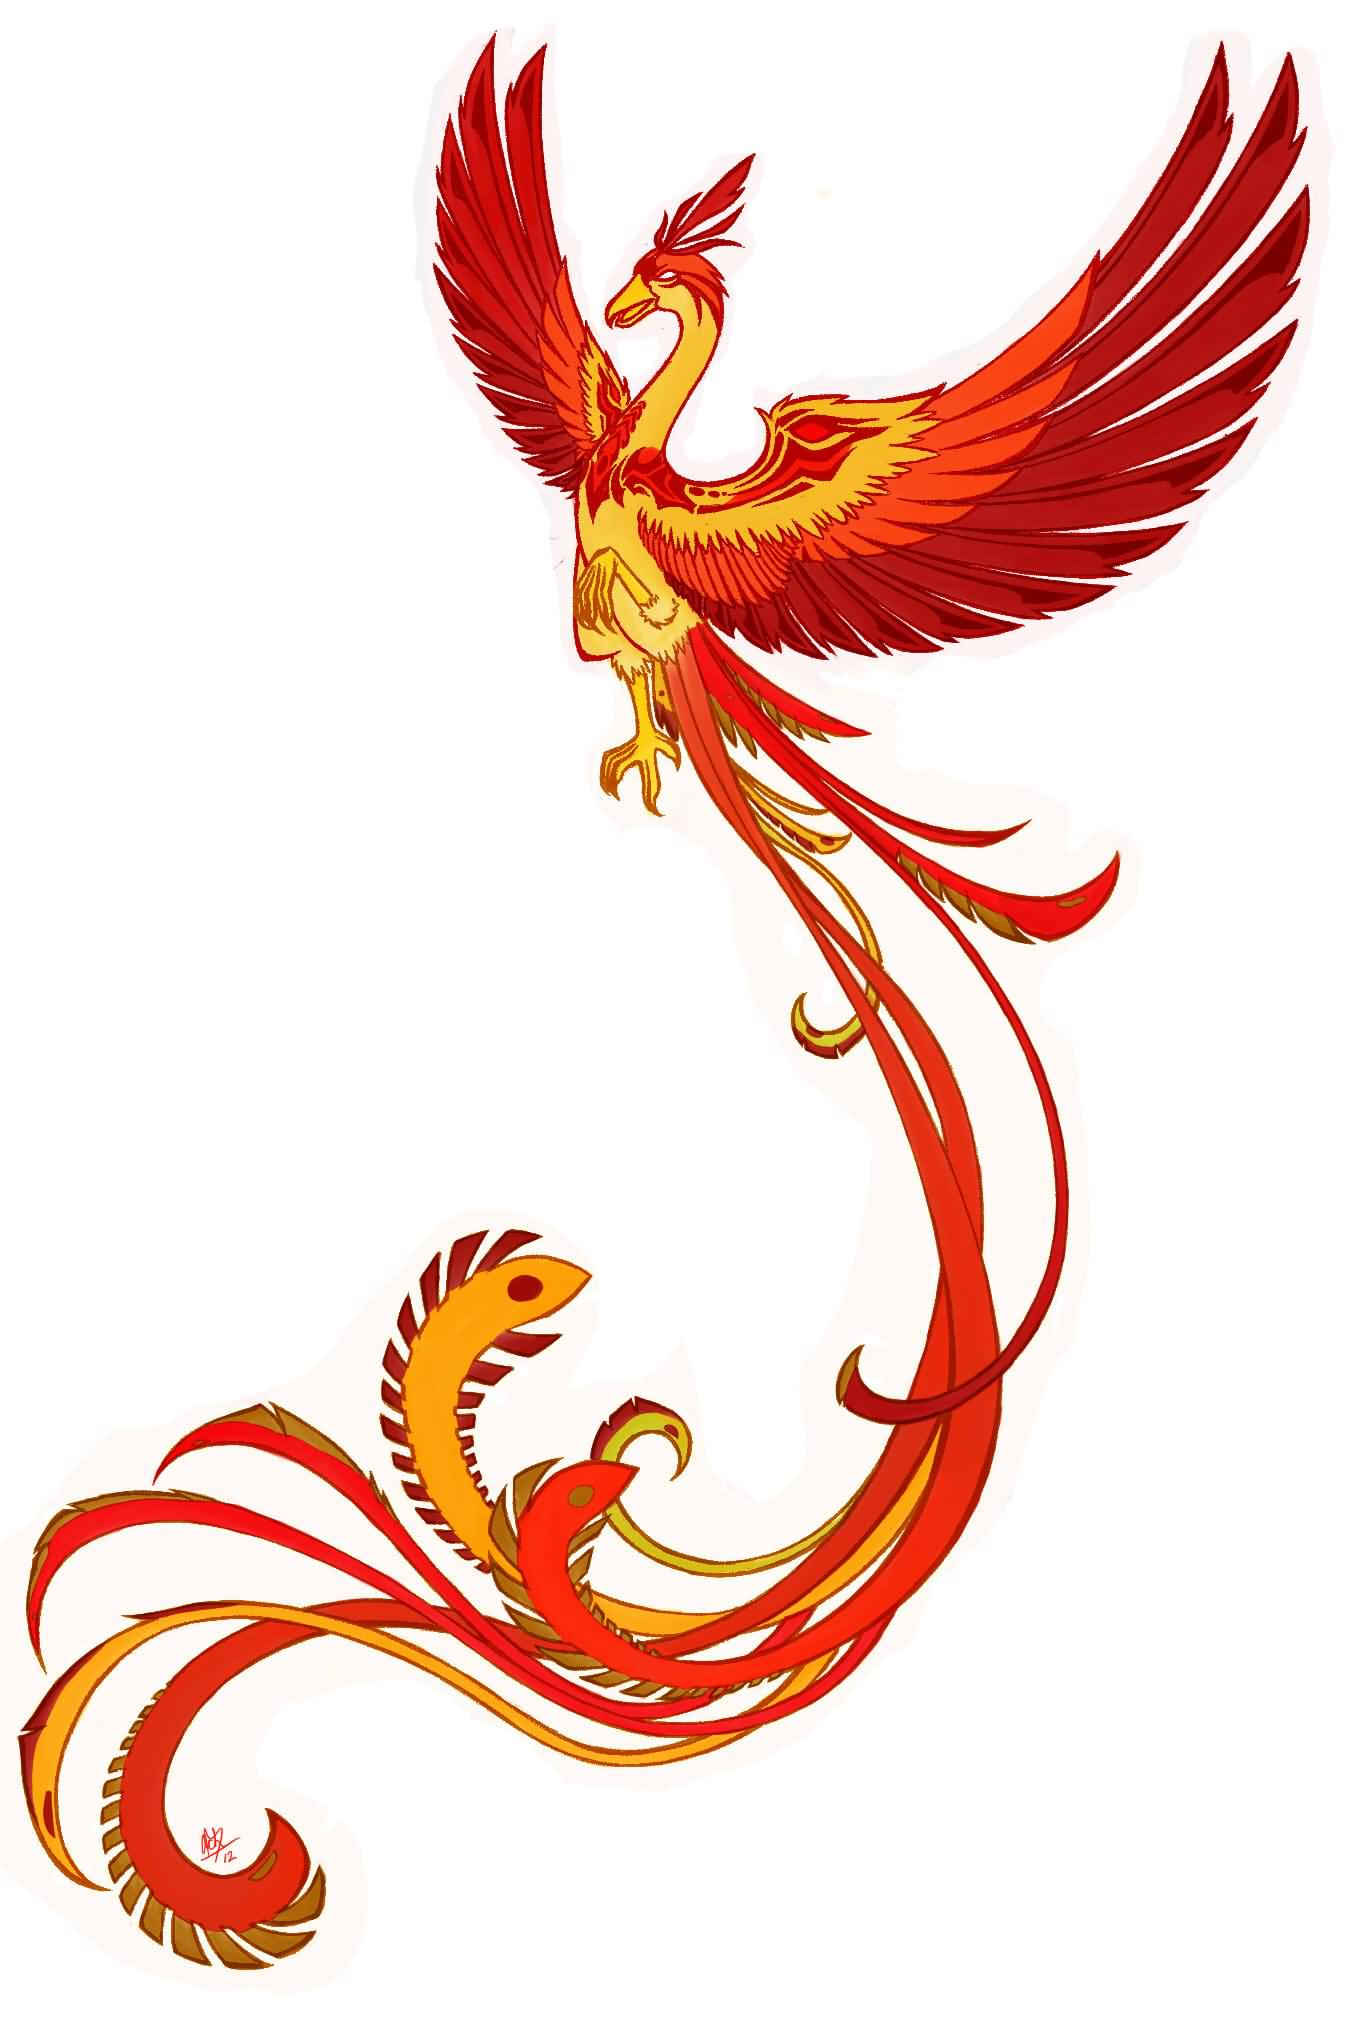 Colorful phoenix tattoo designs - Attractive Flying Phoenix Tattoo Design By Scuro Acheson